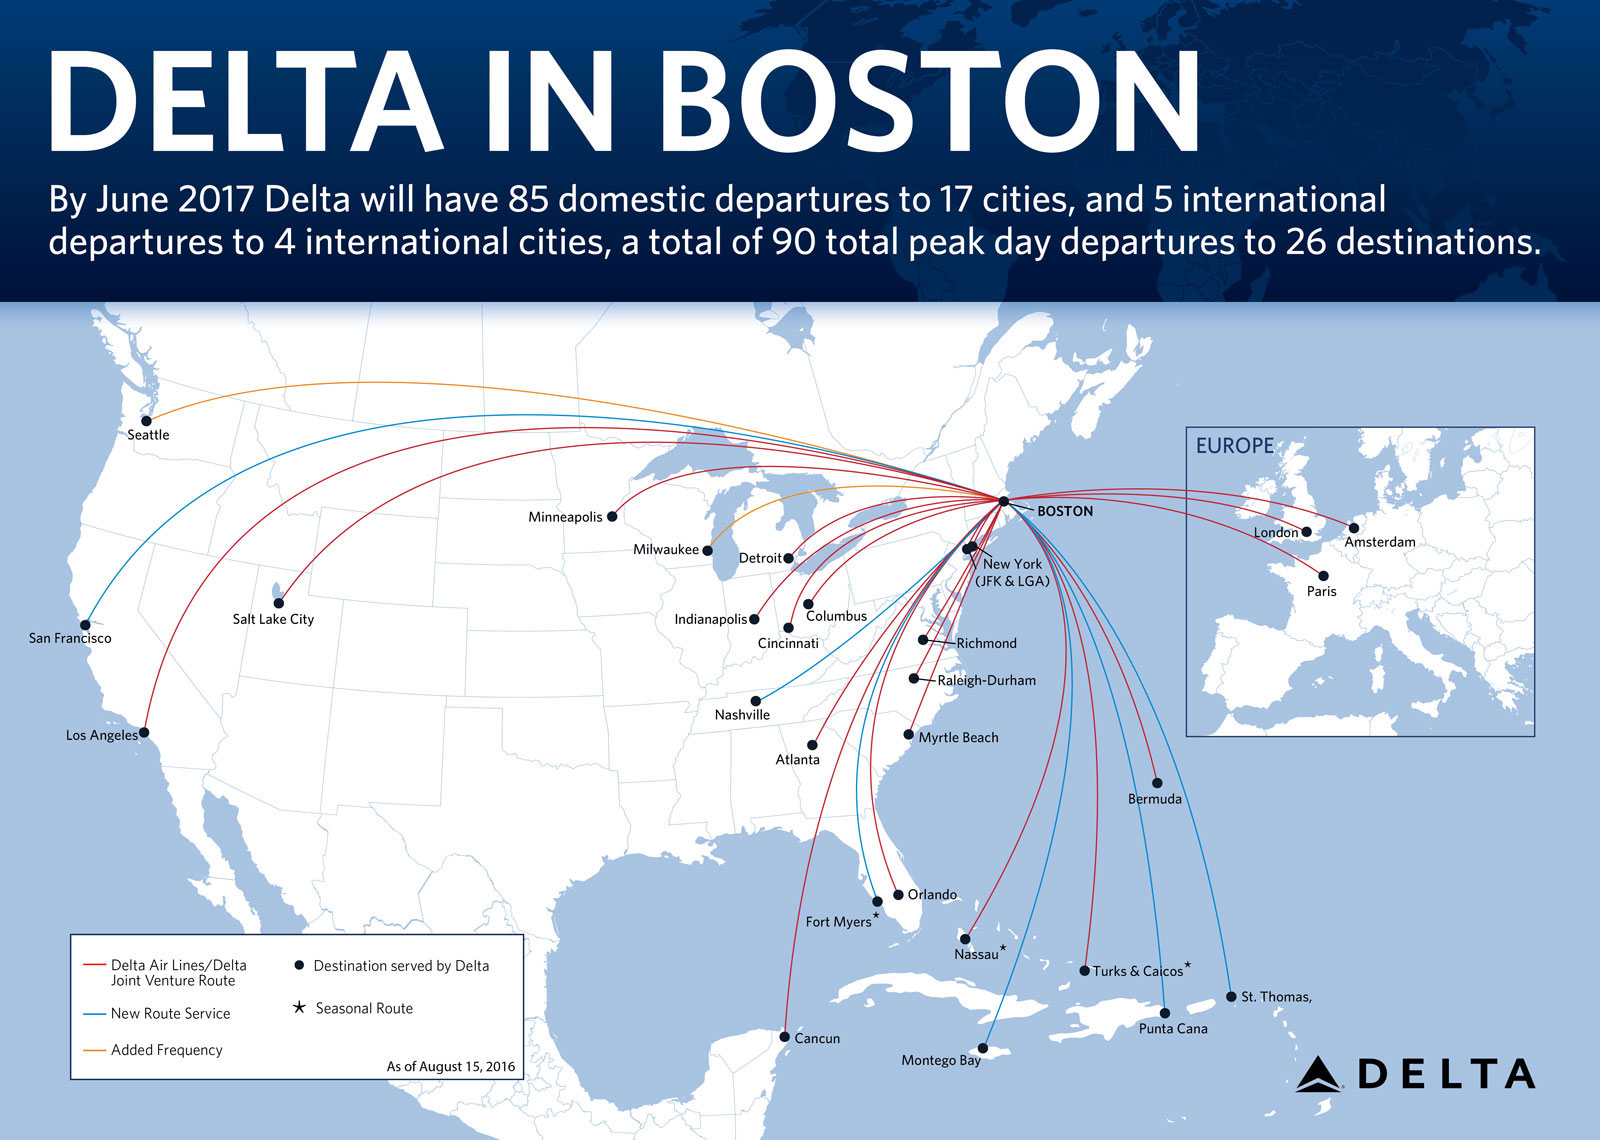 A graphic of the new Delta Air Lines routes from Boston.